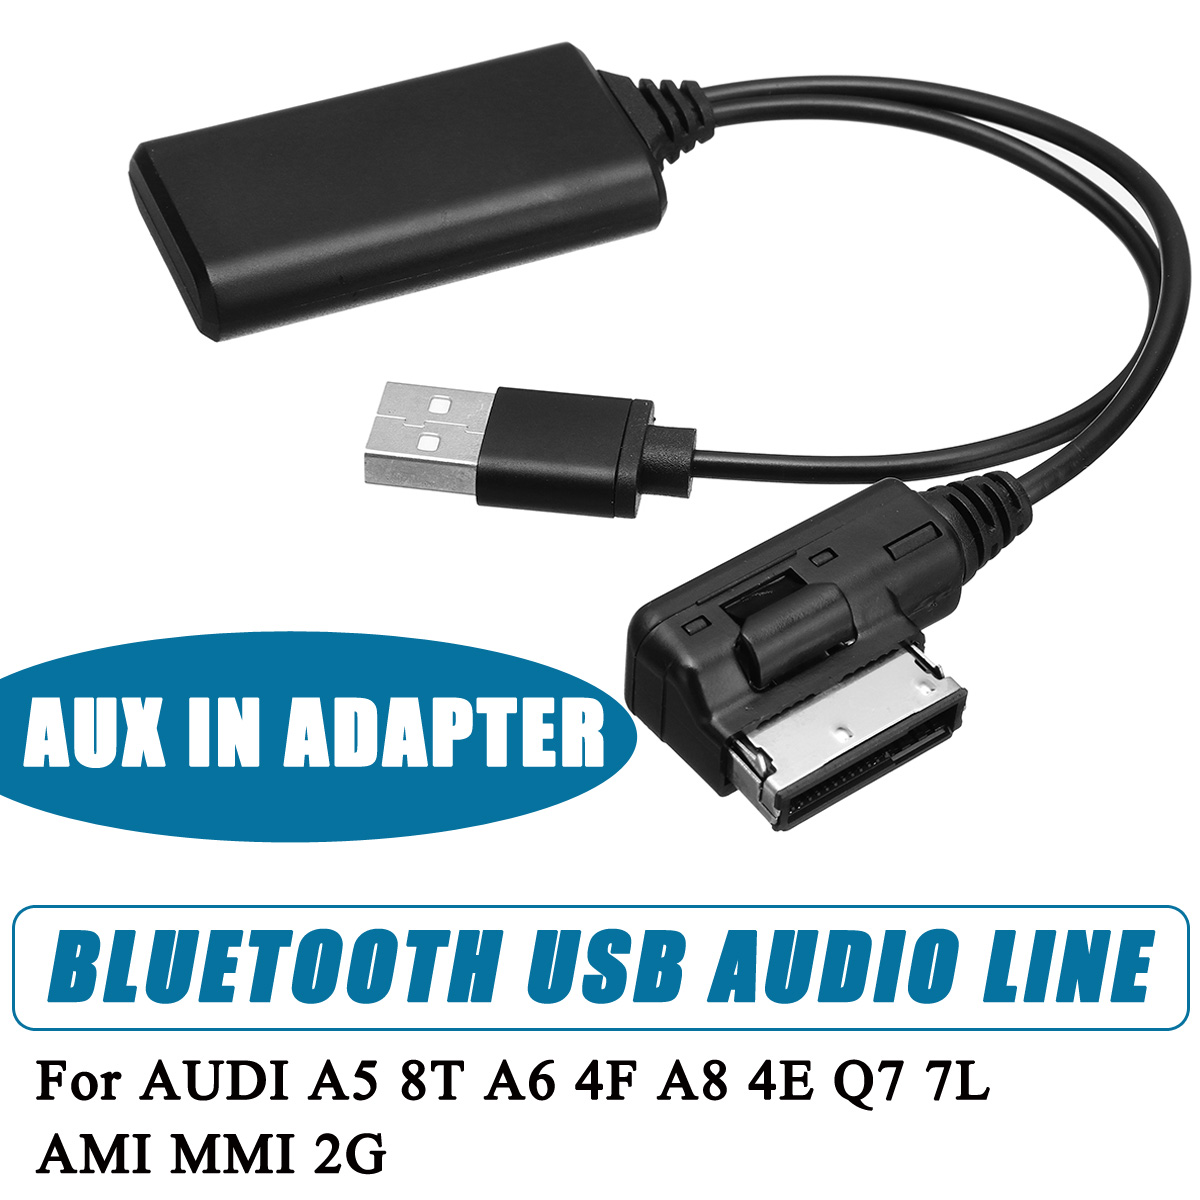 Wireless Bluetooth Adapter Cable For Audi And Volkswagen: Mini Wireless Bluetooth USB AUX In Adapter Cable Music